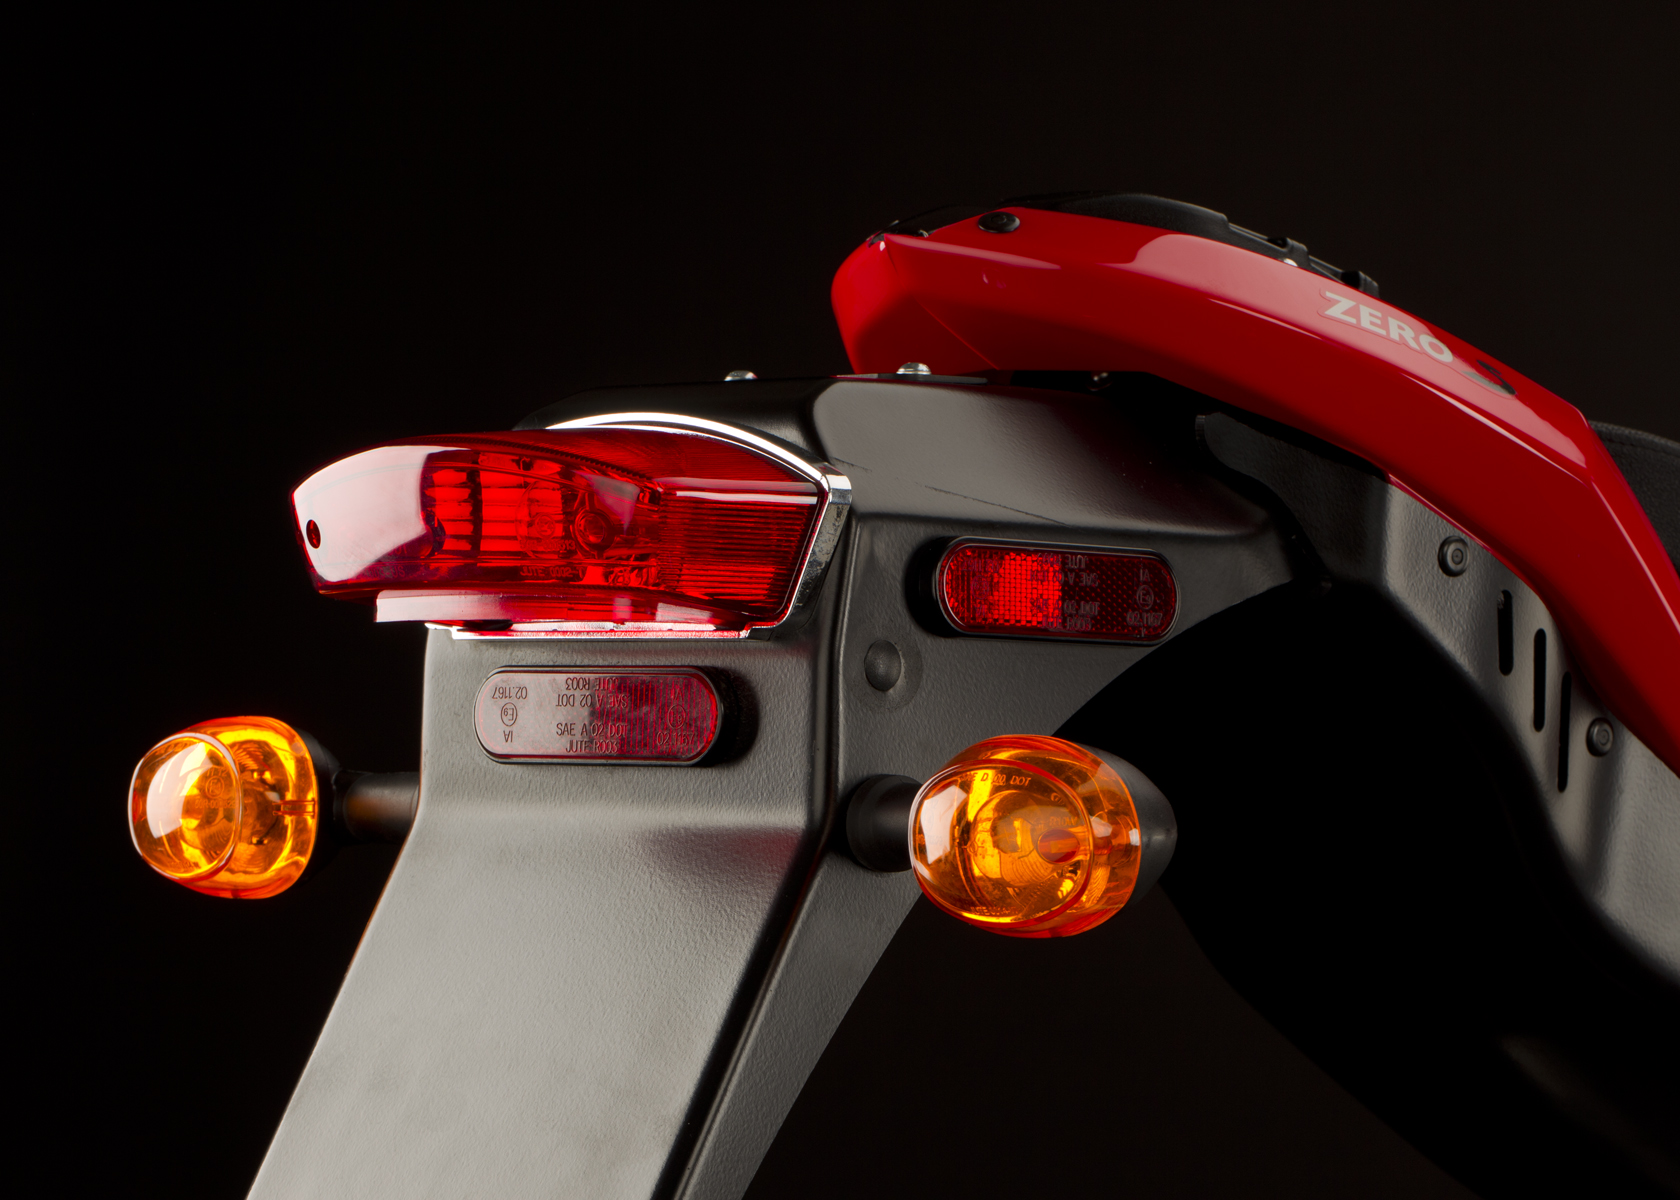 '.2011 Zero S Electric Motorcycle: Tail Lights.'